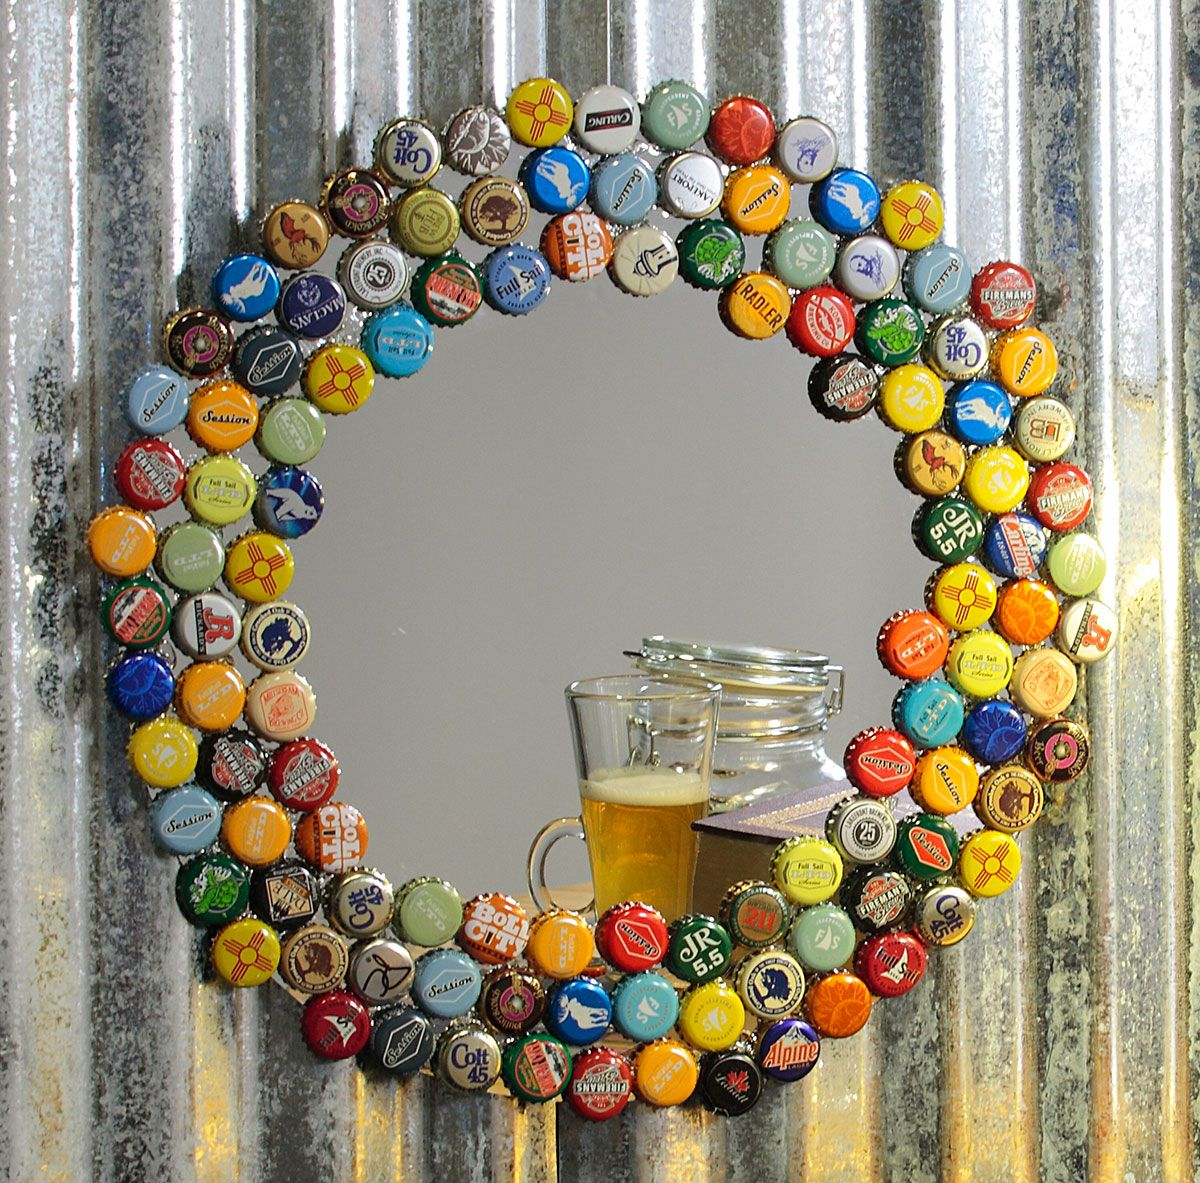 Diy deco miroir avec capsules color es deco pinterest for Decoration de miroir